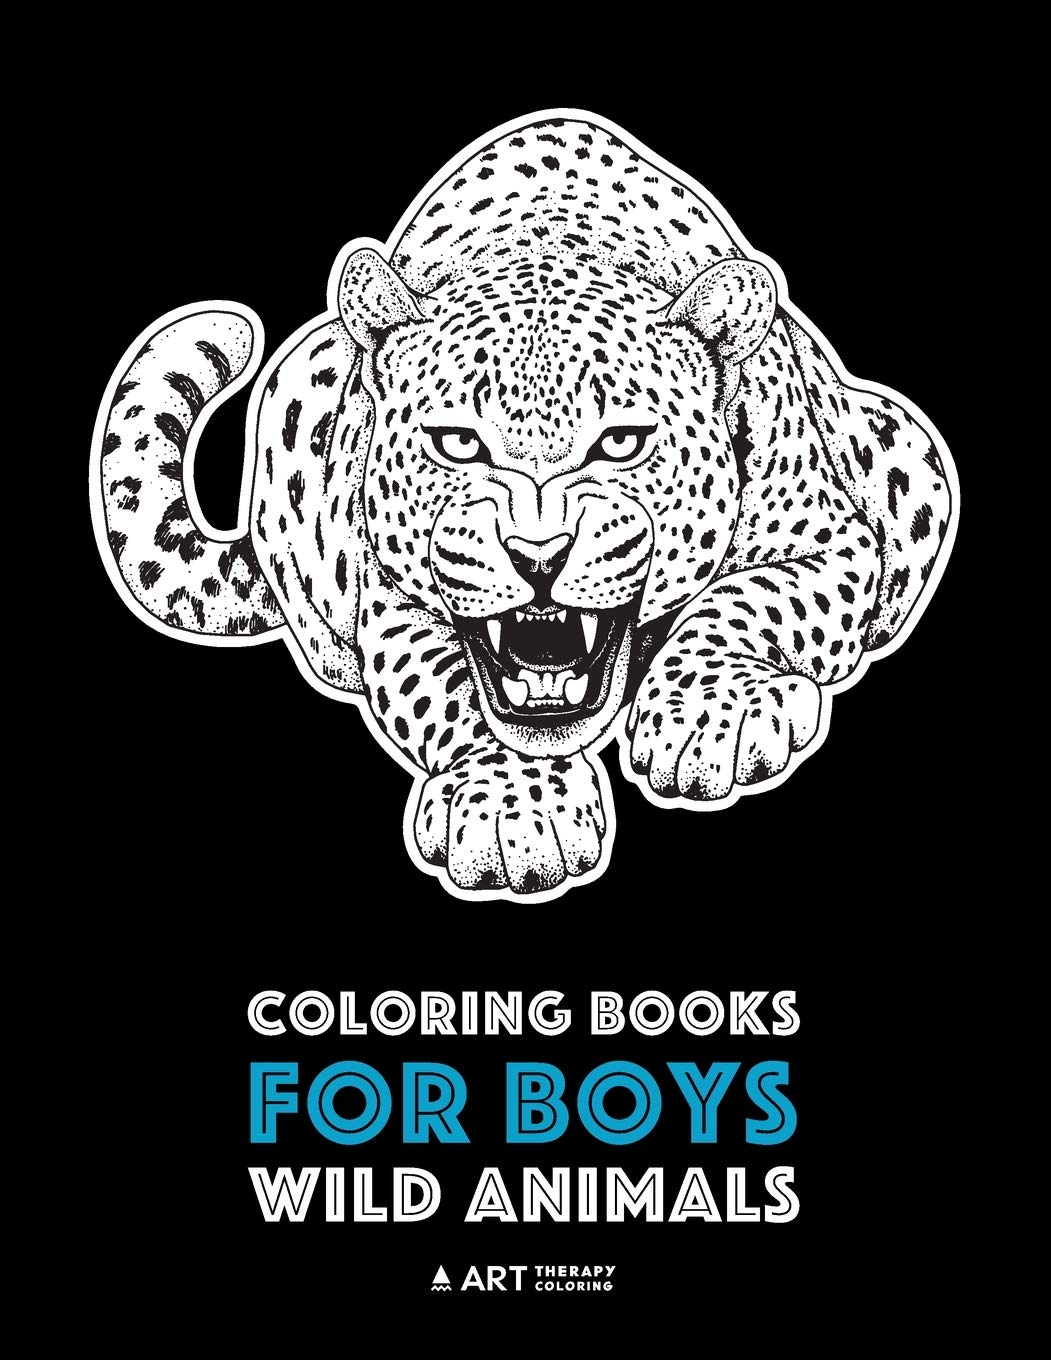 Coloring Books For Boys Wild Animals Advanced Coloring Pages For Teenagers Tweens Older Kids Boys Zendoodle Animal Designs Lions Tigers Practice For Stress Relief Relaxation Art Therapy Coloring 9781641260886